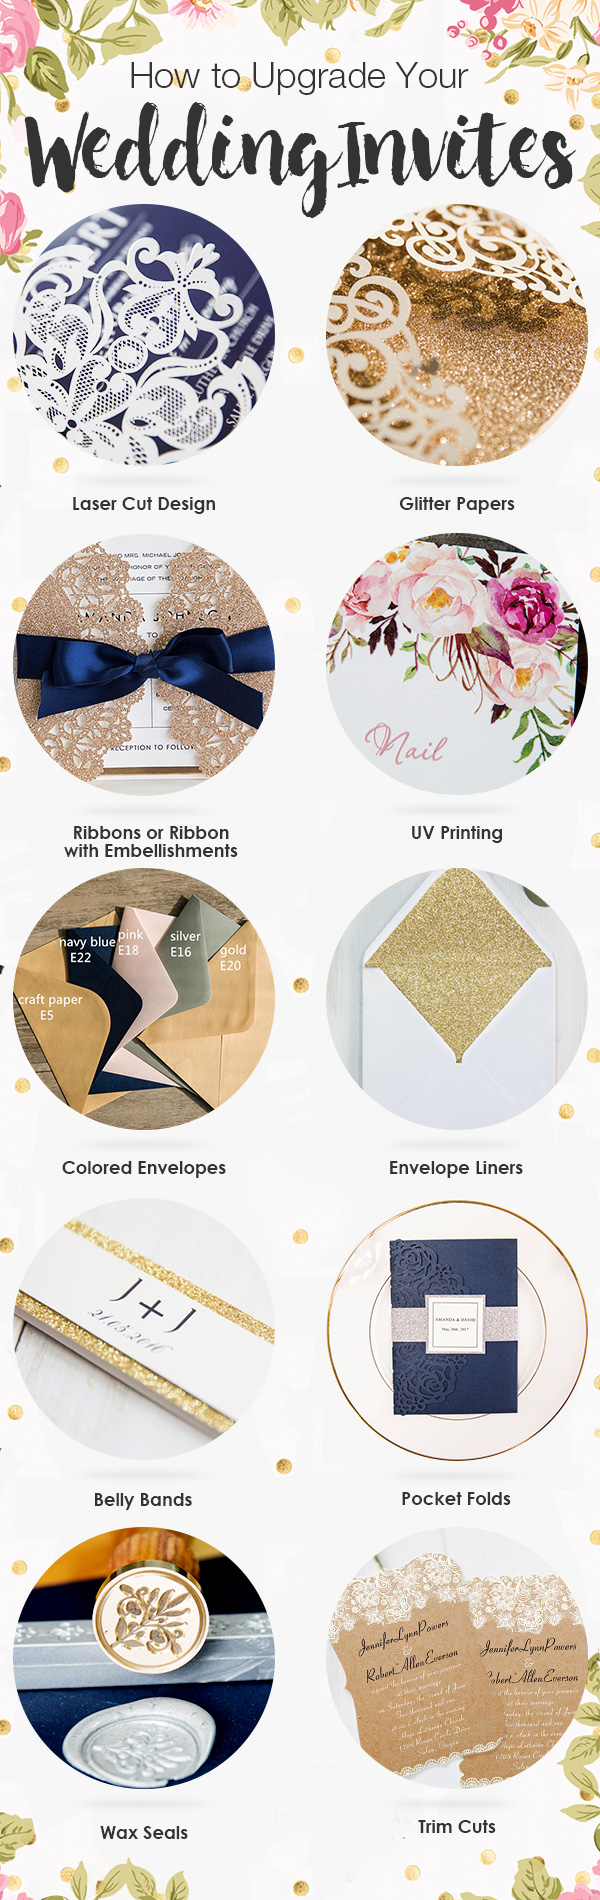 Creative-Ways-to-Upgrade-Your-Wedding-Invites.jpg